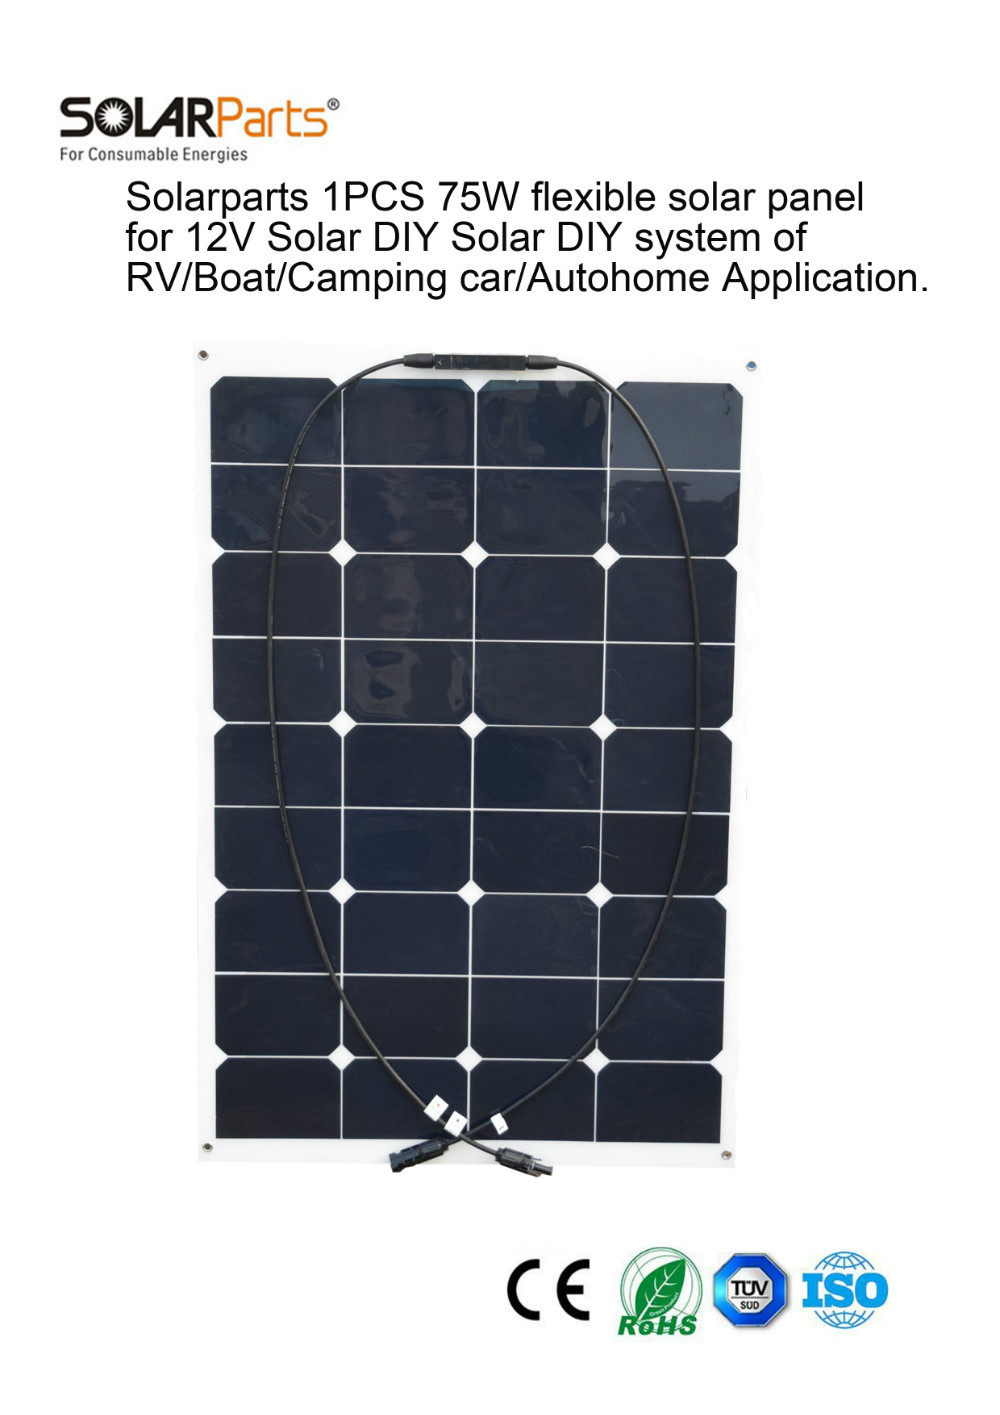 solarparts 1pcs 75w flexible solar panel 12v cell system kits diy yacht boat. Black Bedroom Furniture Sets. Home Design Ideas